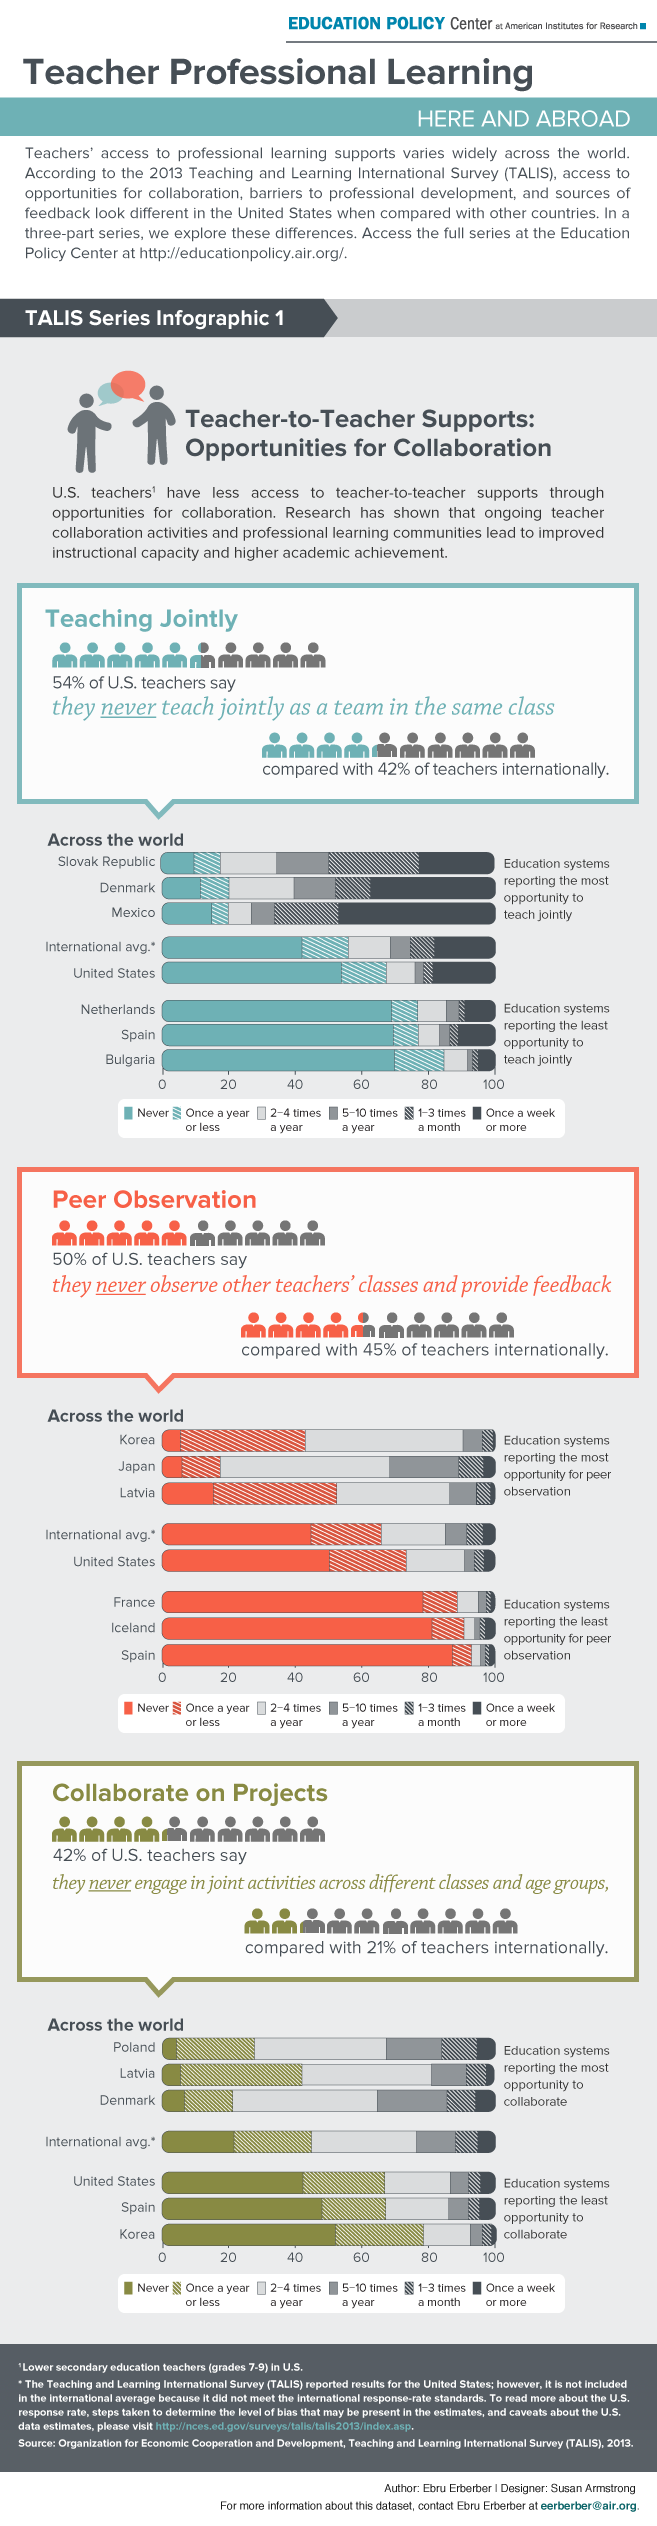 Infographic: Do U.S. Teachers Learn from One Another?